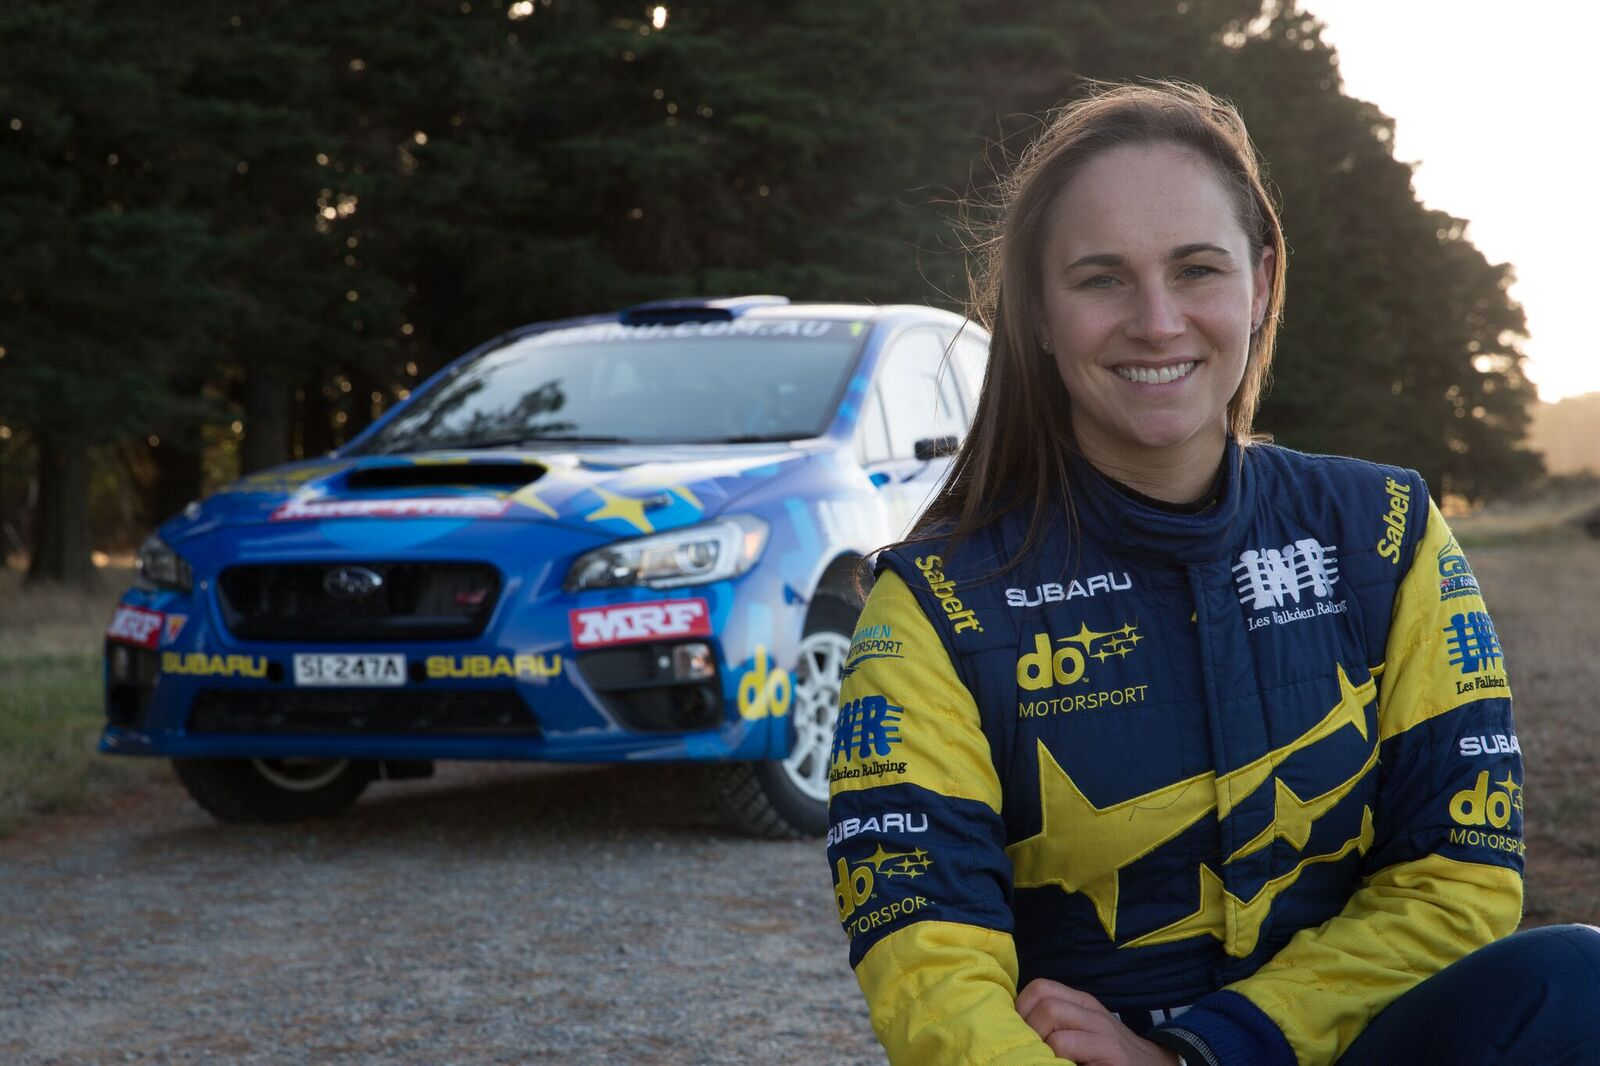 SUBARU DO PODIUM PRESSURE IN WA